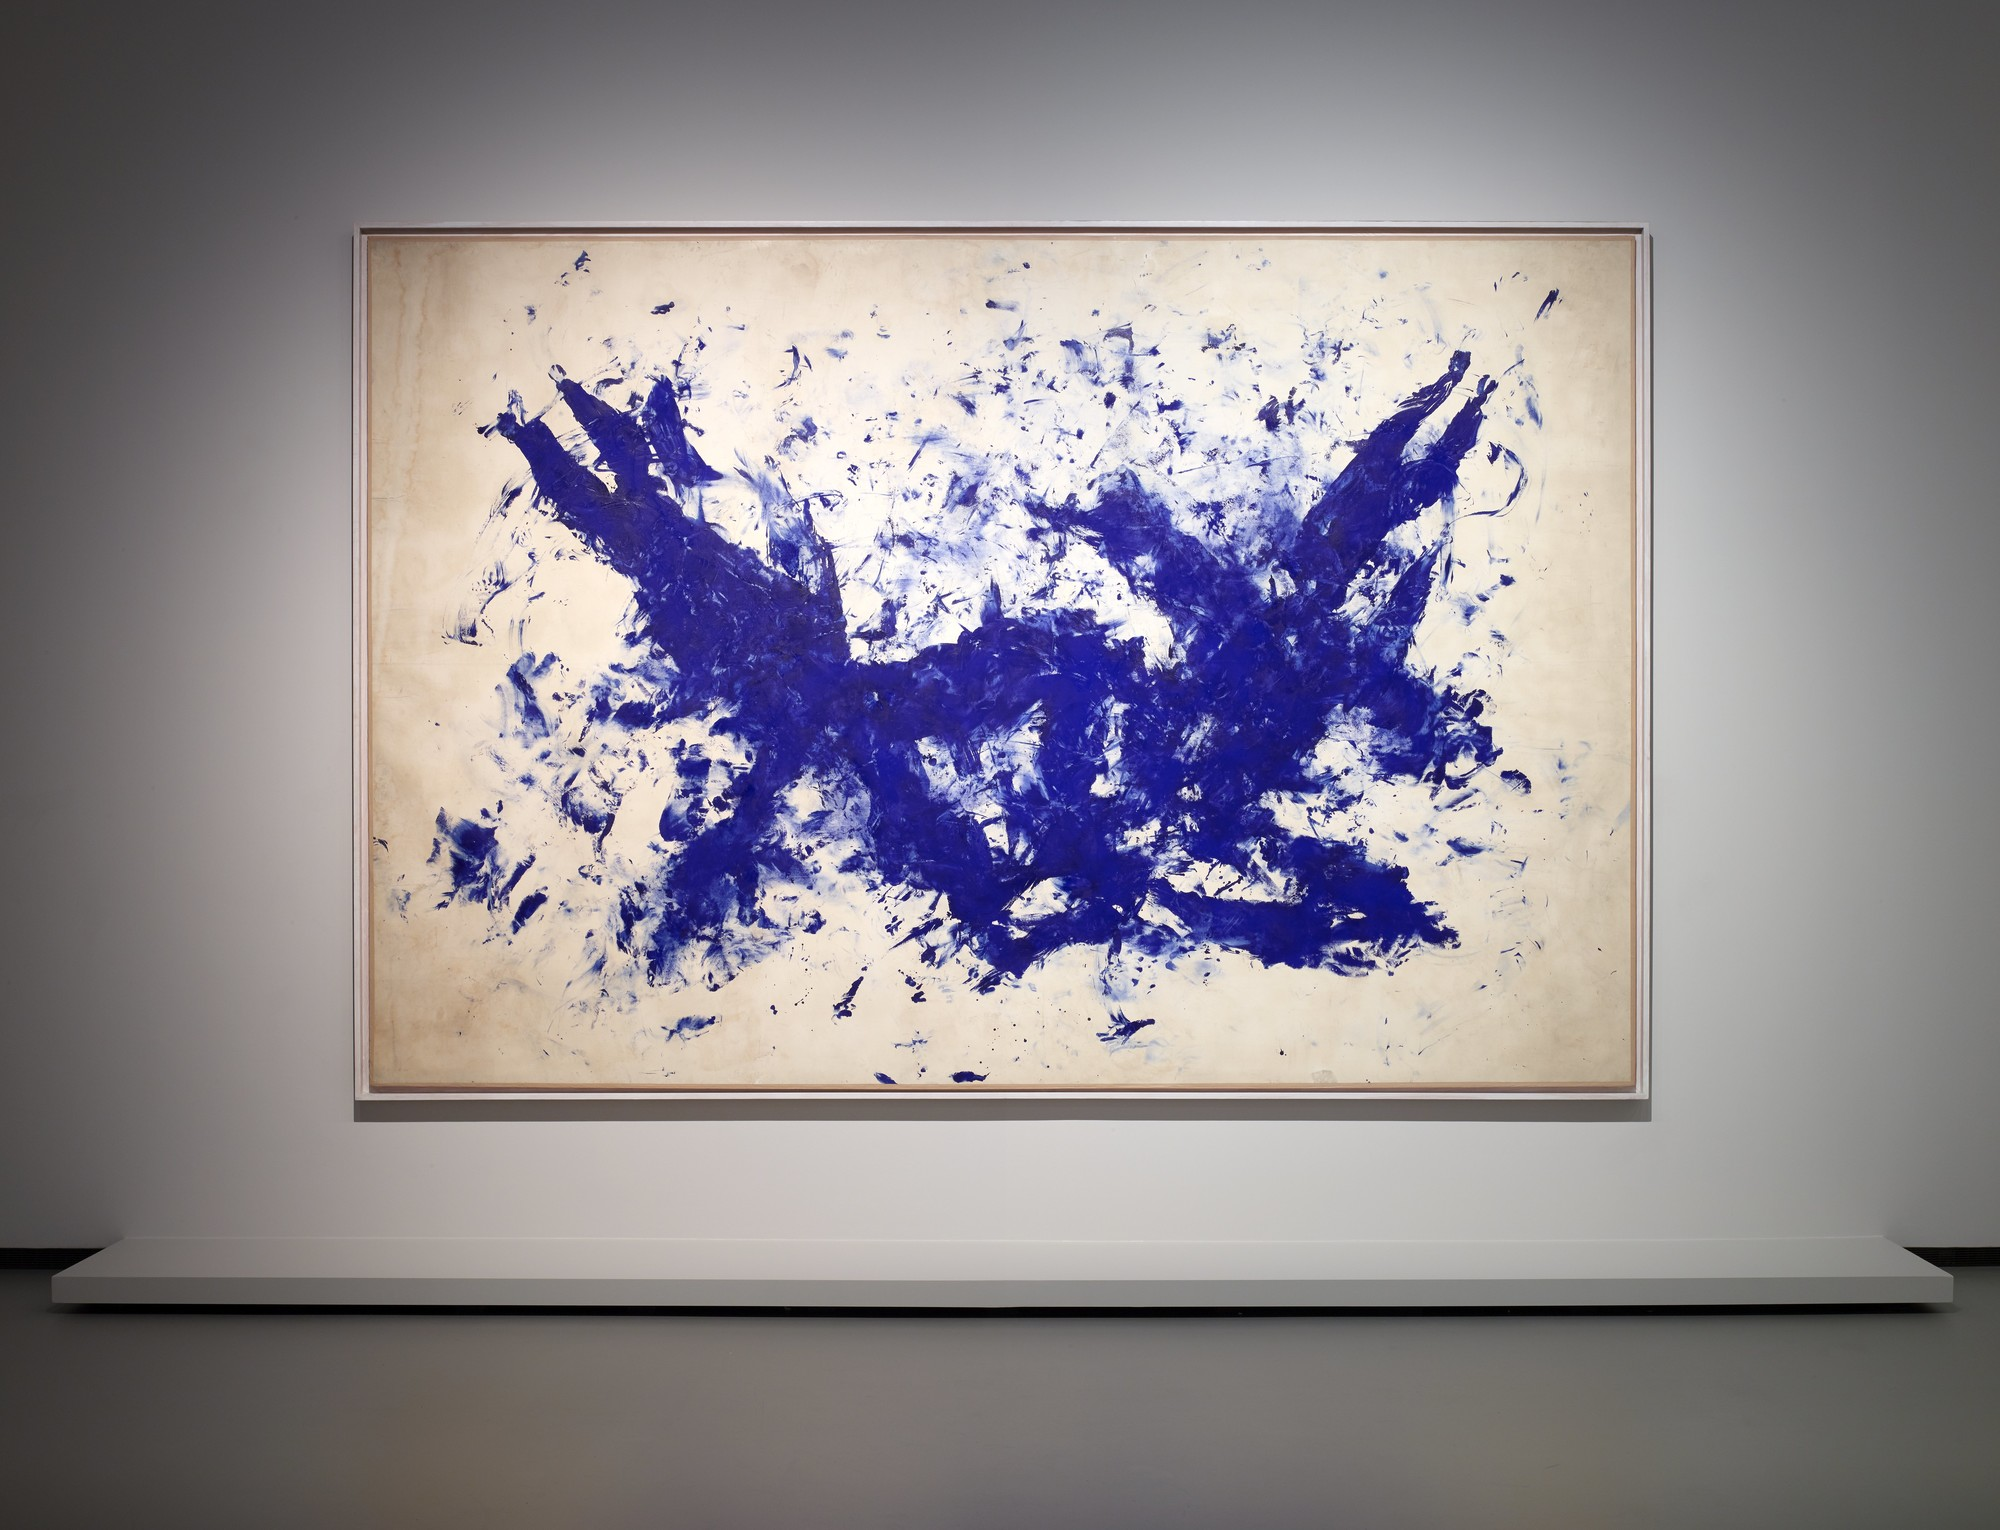 044472169d Collection of Fondation Louis Vuitton: Selected Works. Exhibition